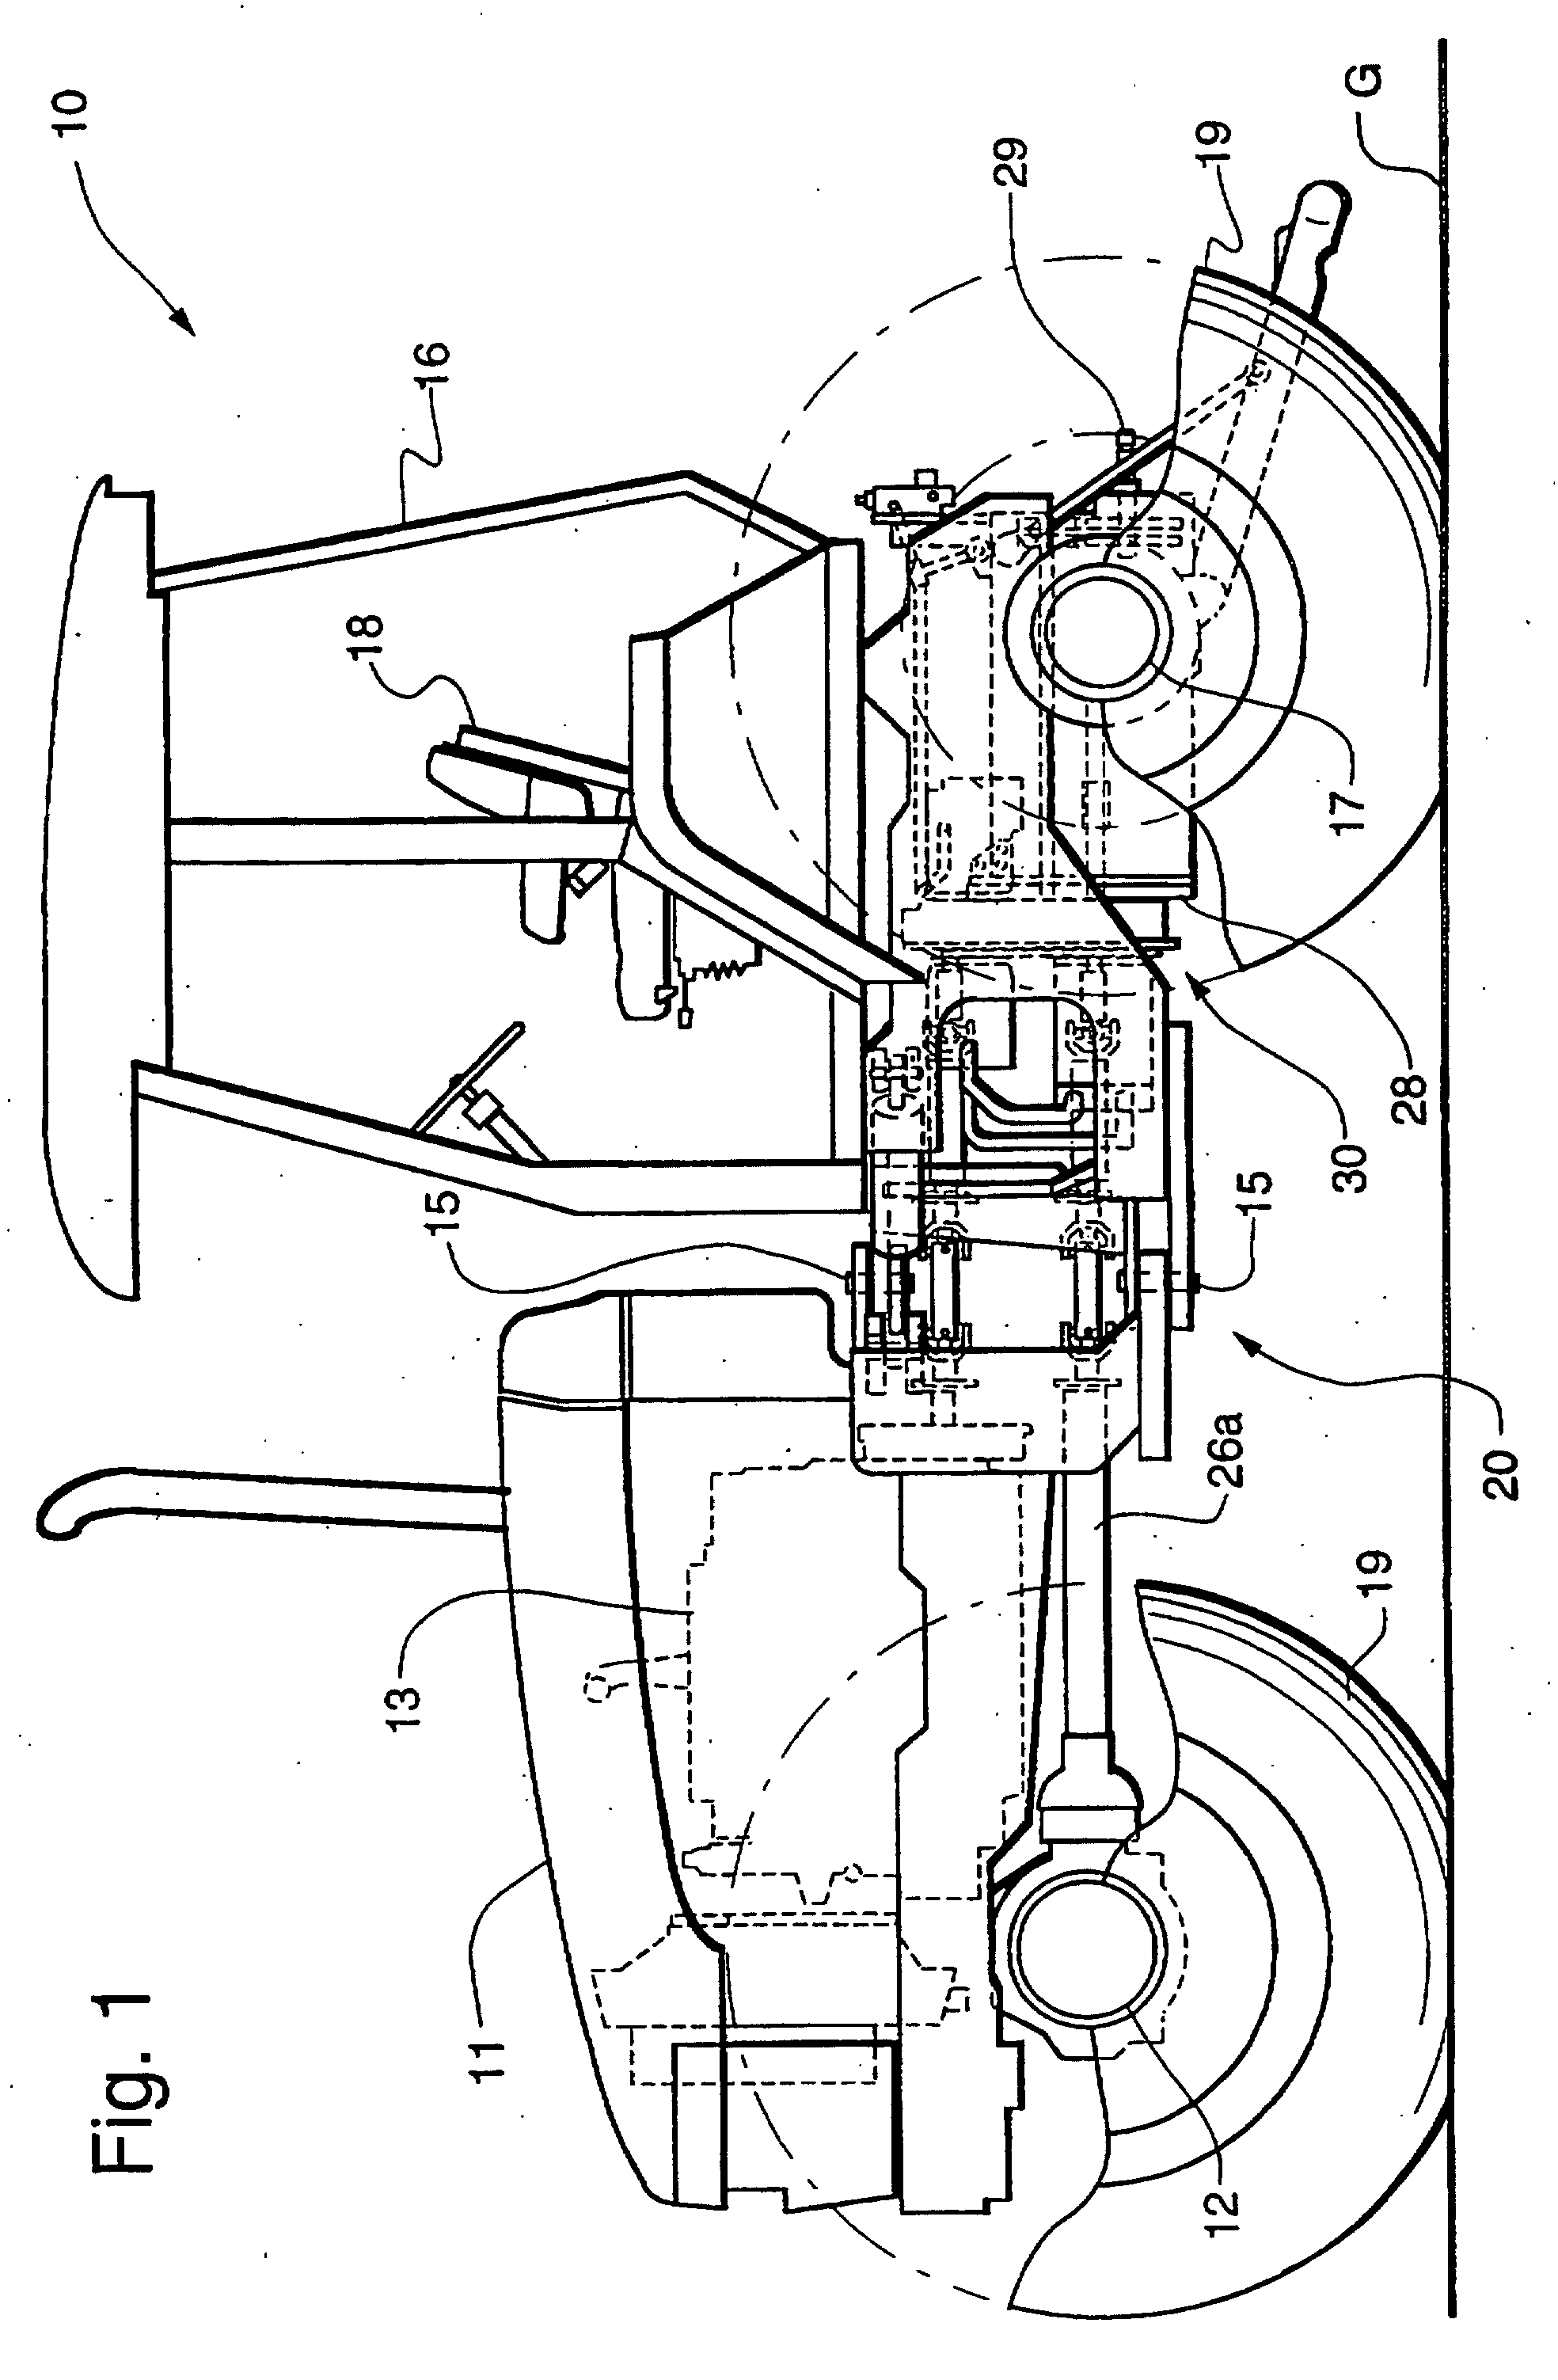 Cat Backhoe Hydraulic Schematic